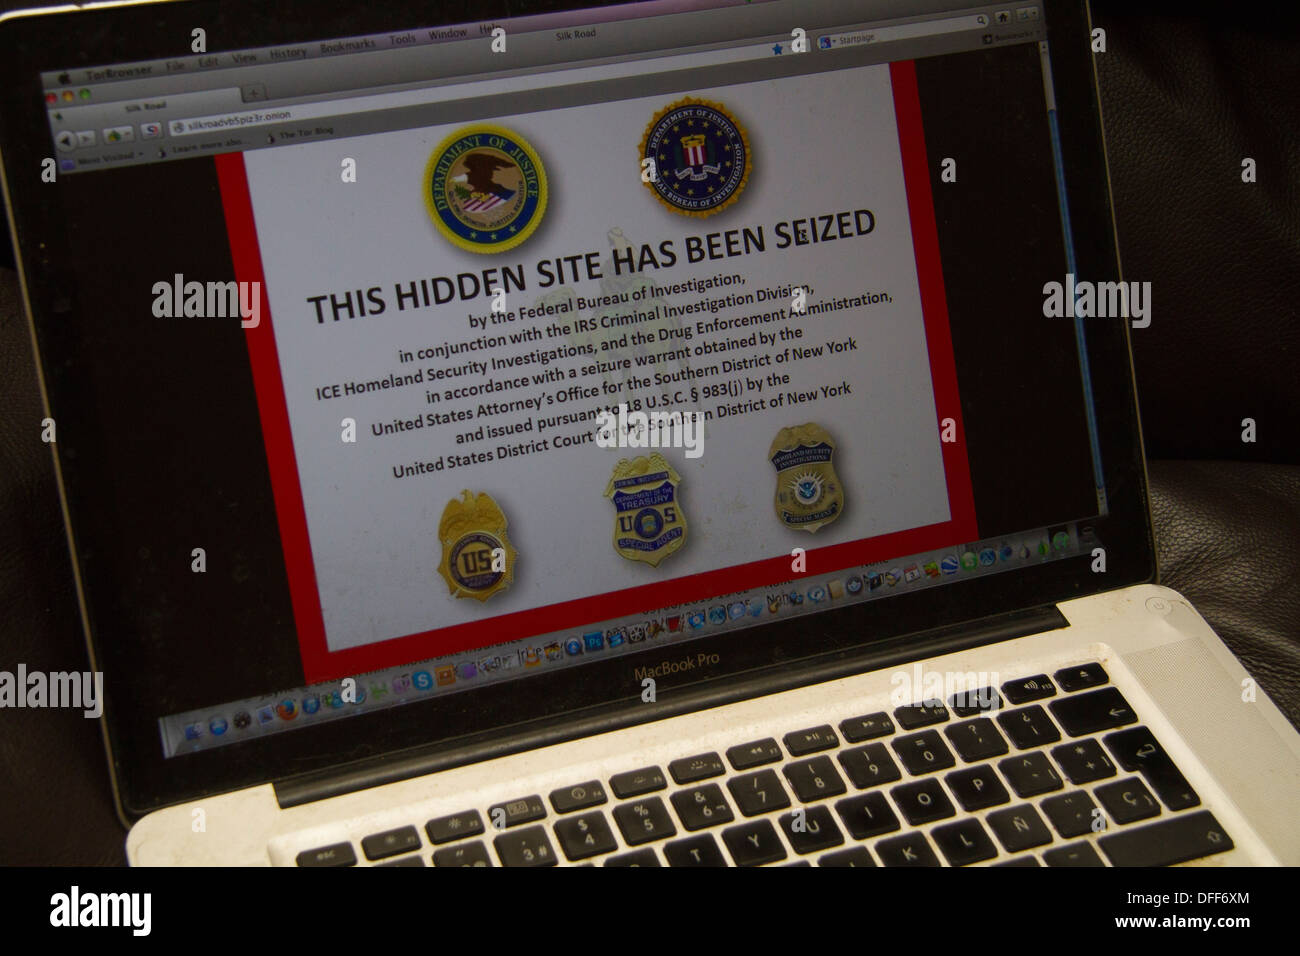 Fbi Silk Road Dark Web Stock Photos & Fbi Silk Road Dark Web